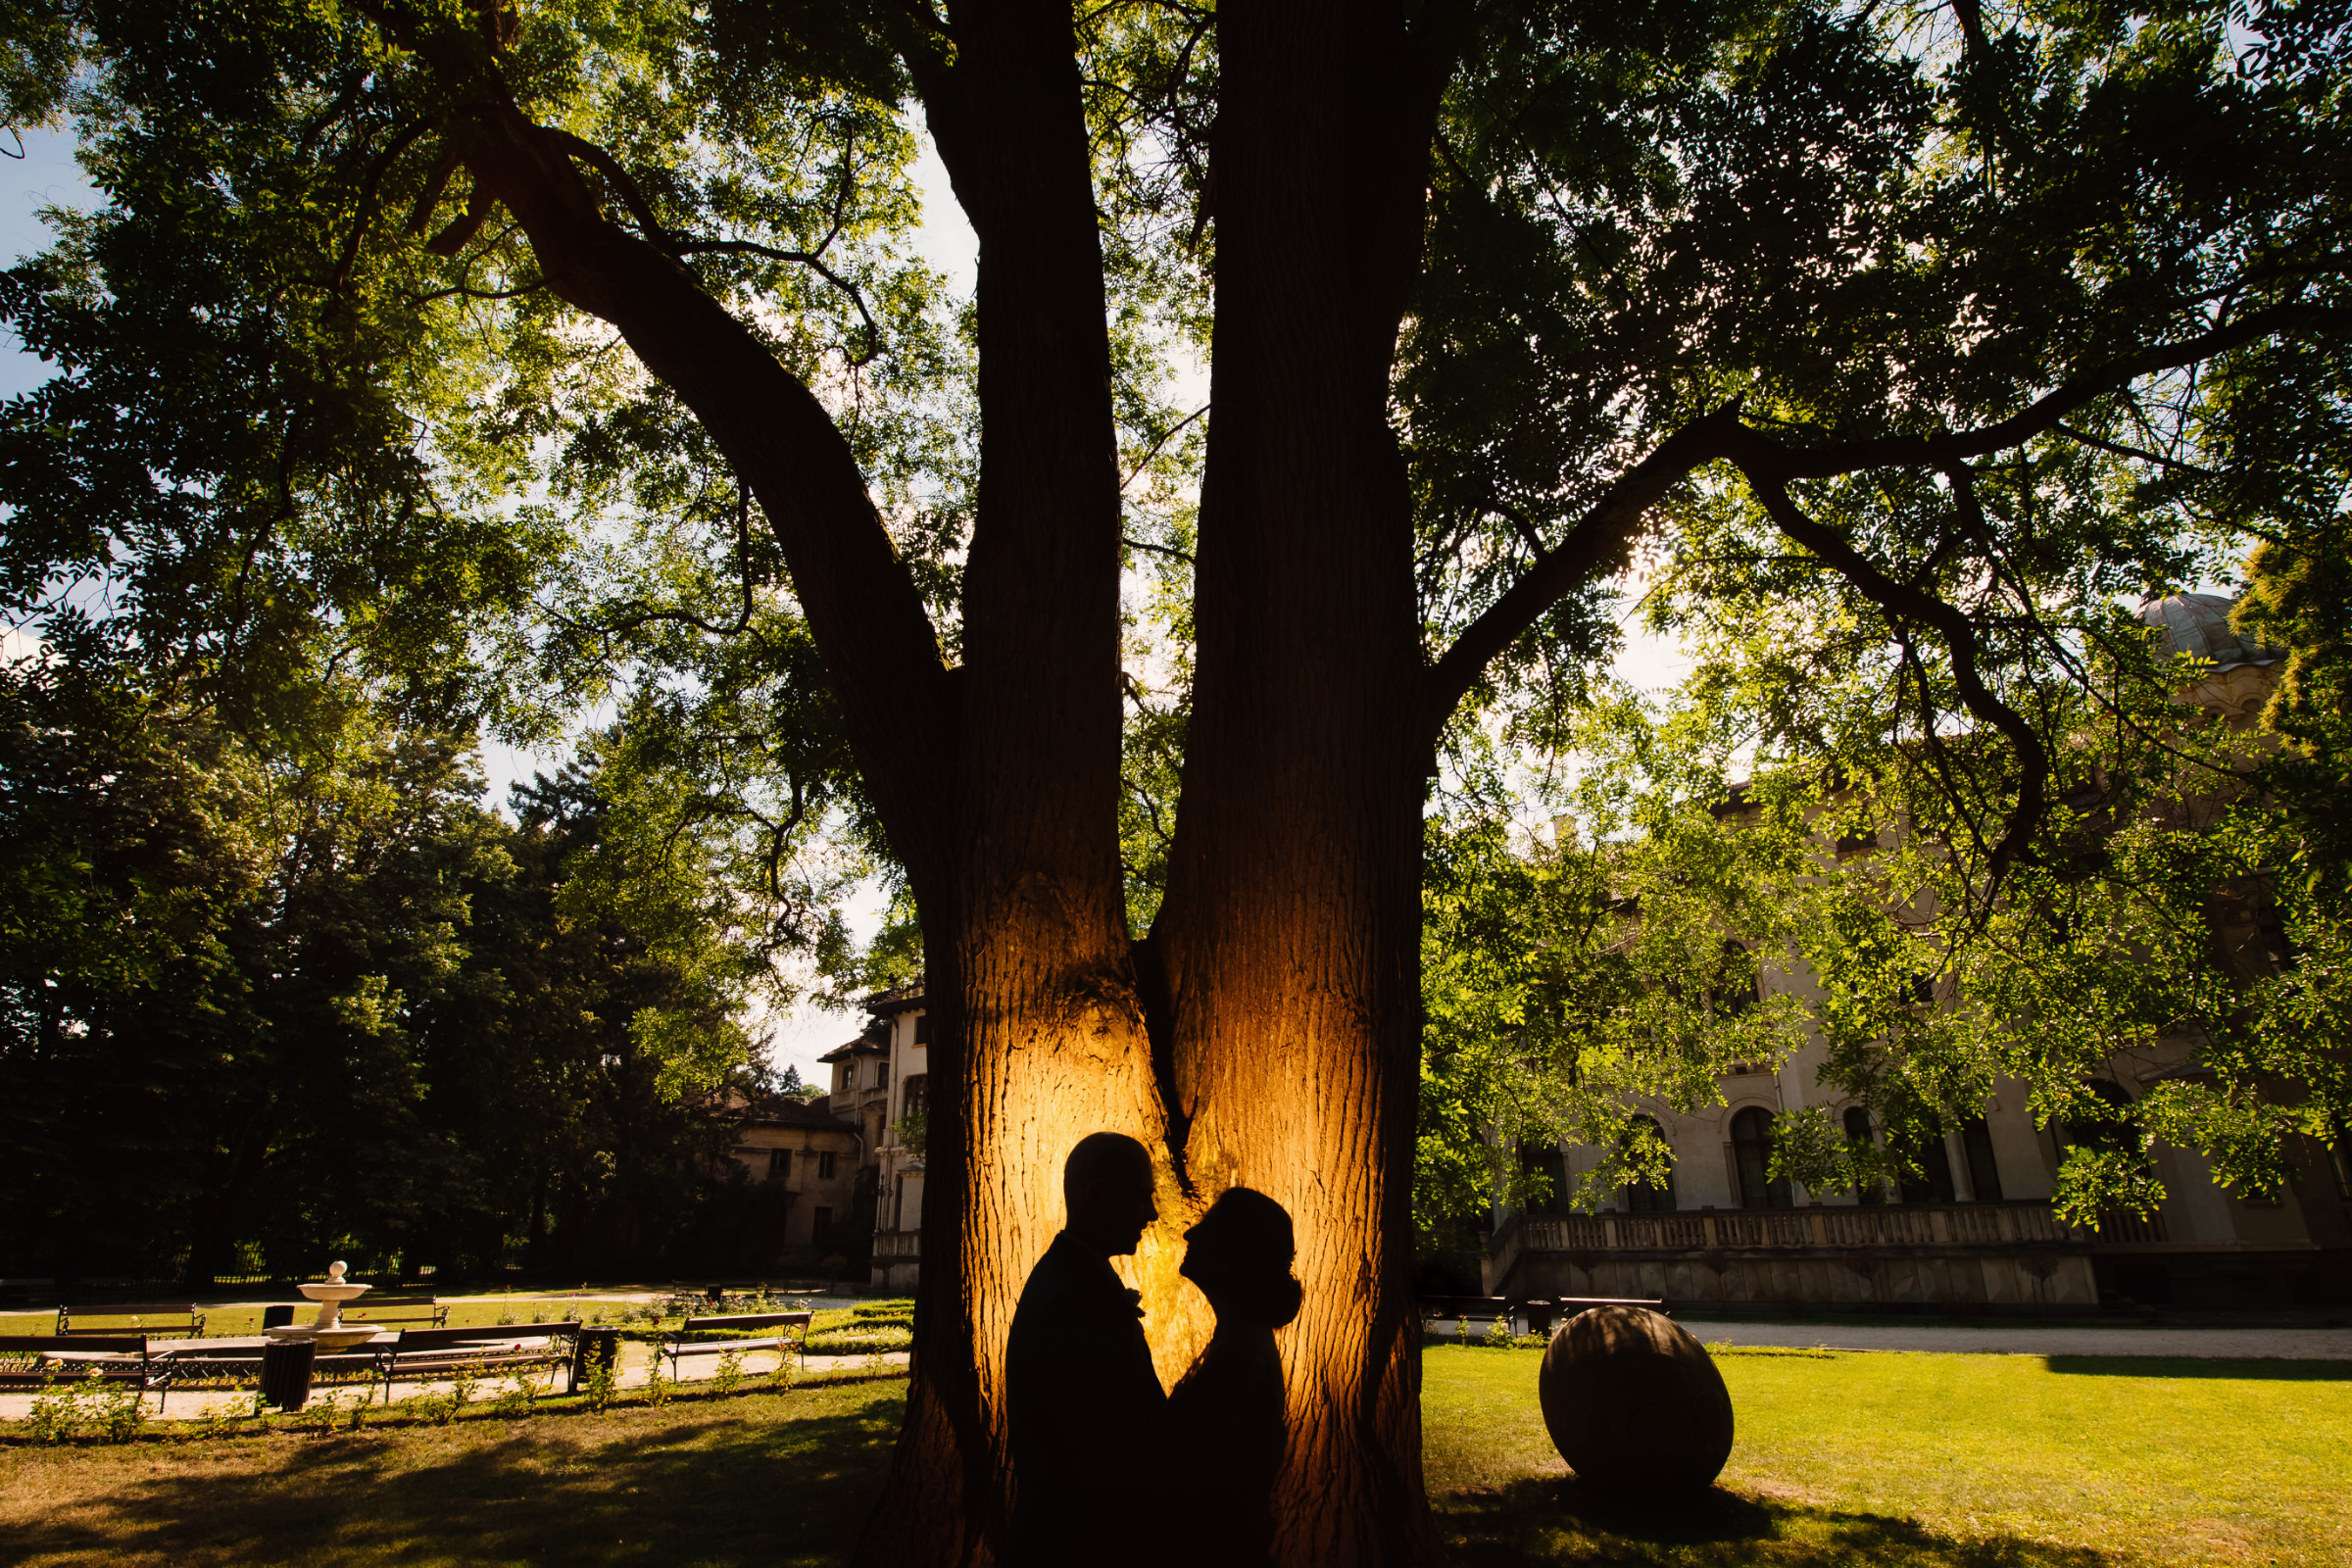 Silhouette couple against large tree - photo by Deliysky Studio